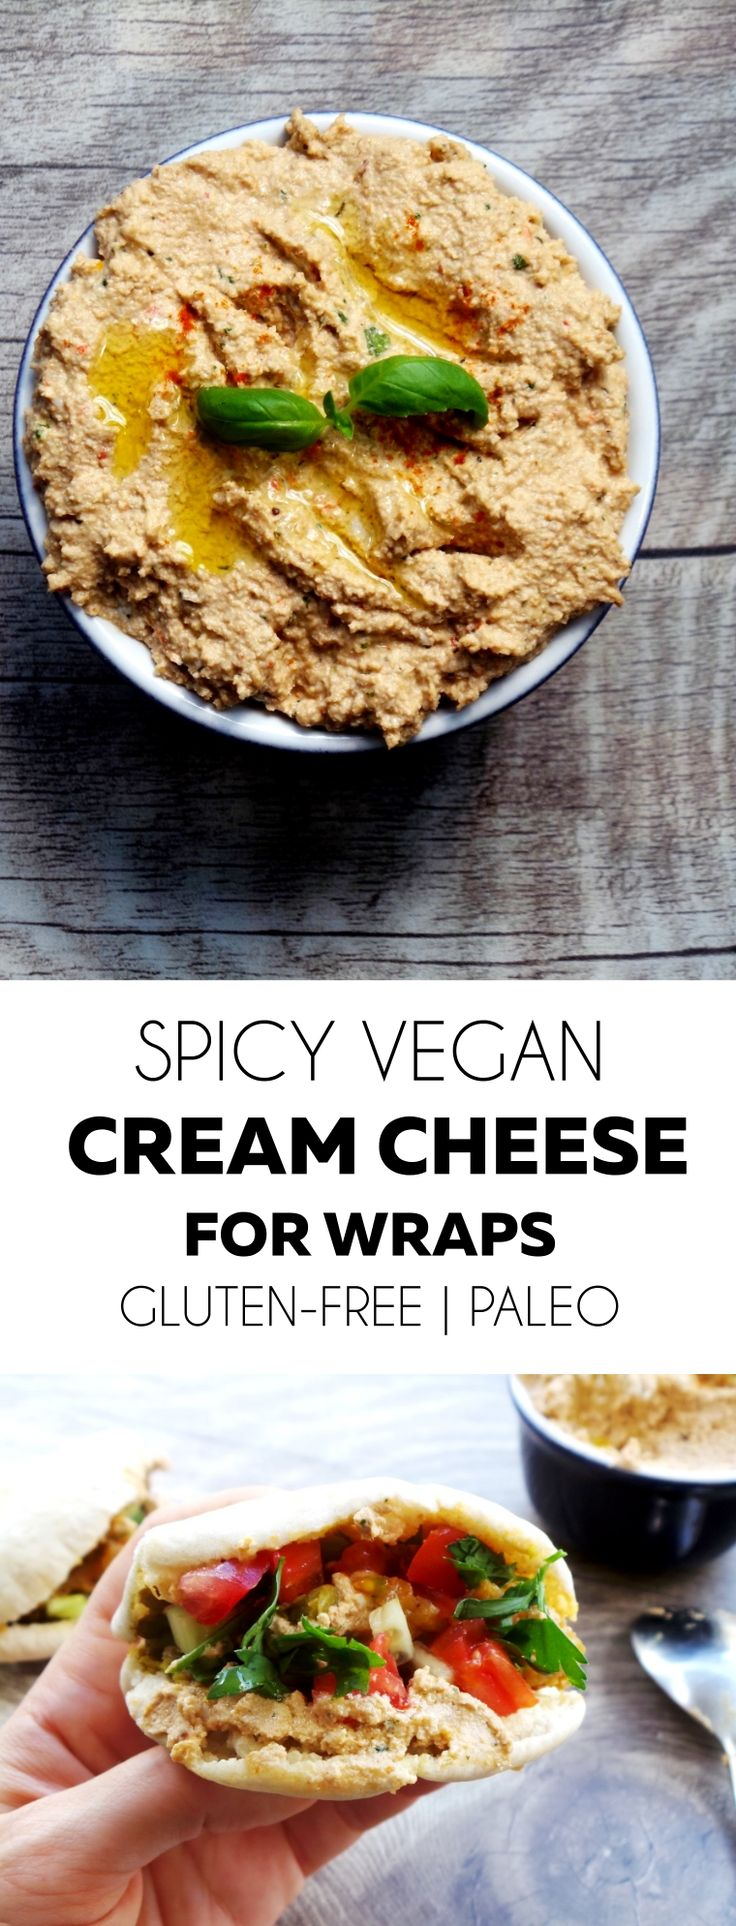 Spicy vegan cream cheese for wraps